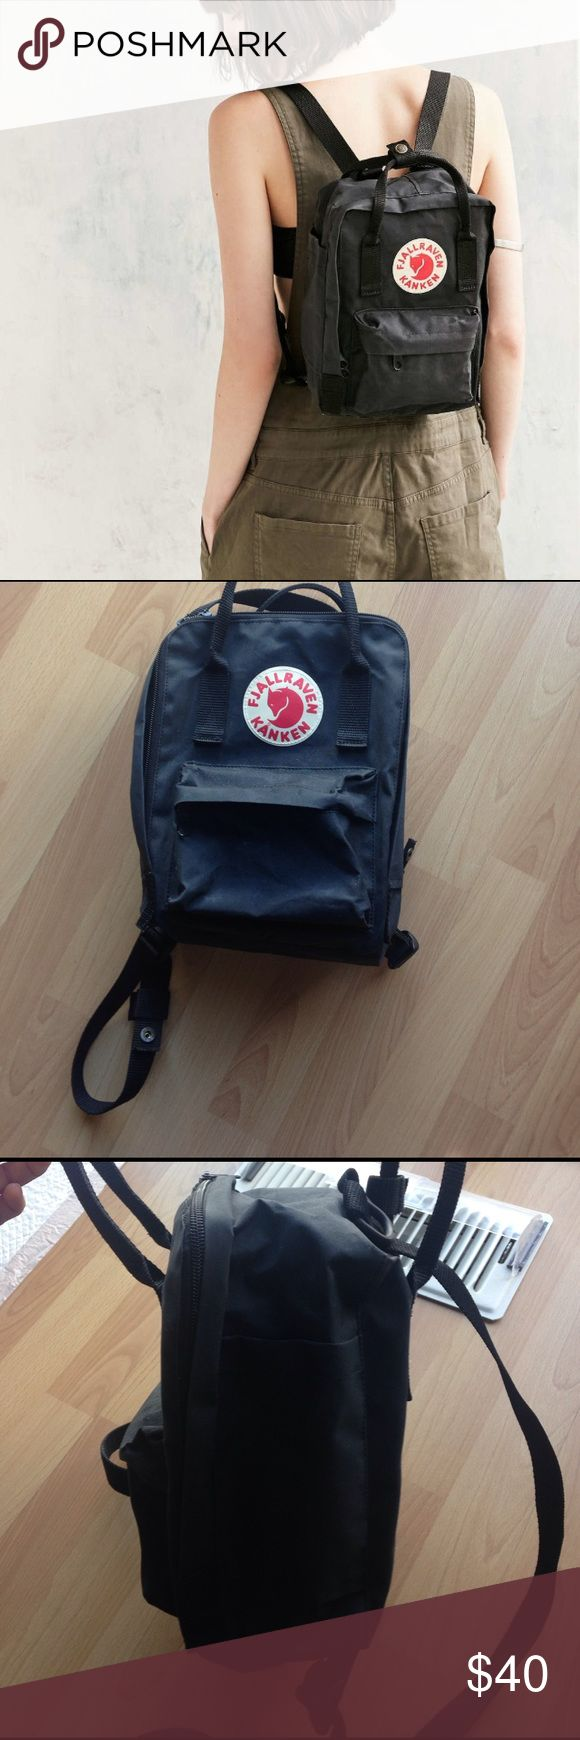 Fjallraven Kanken Mini Backpack Some natural fading, but otherwise no flaws. Zippers are in excellent condition. Color is black. Mini-size so perfect for bringing along anywhere. Fjallraven Bags Backpacks